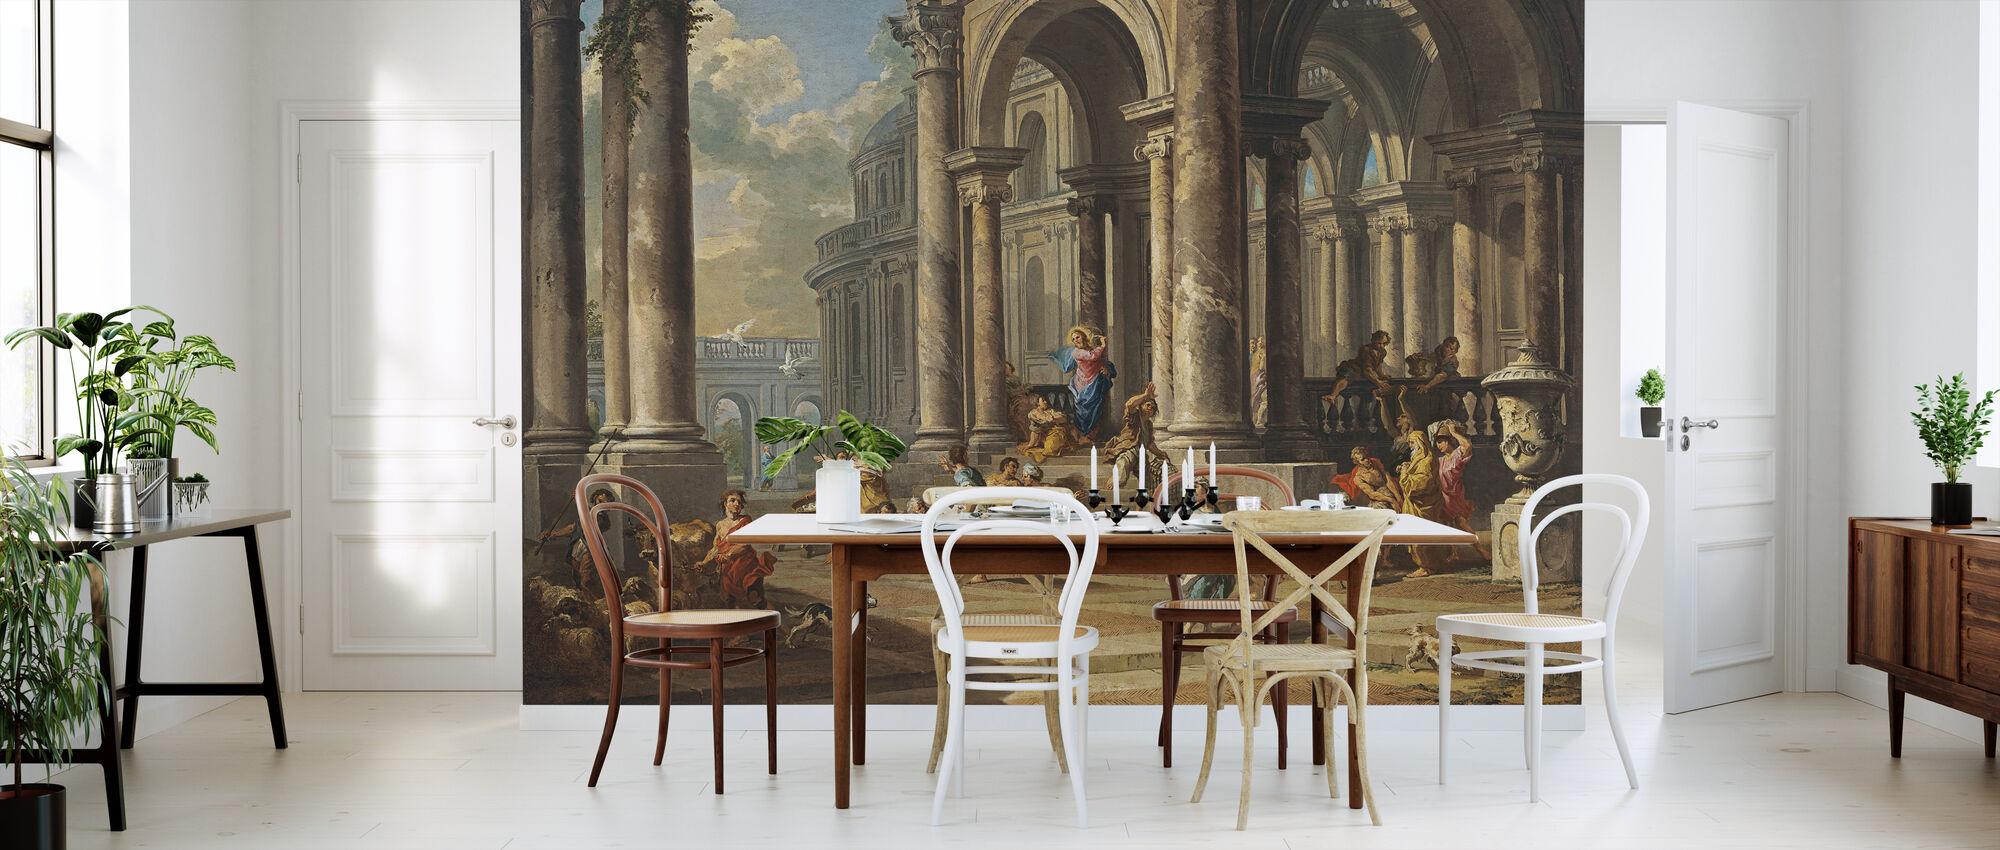 Cleansing of the Temple - Gian Paolo Panini - Wallpaper - Kitchen